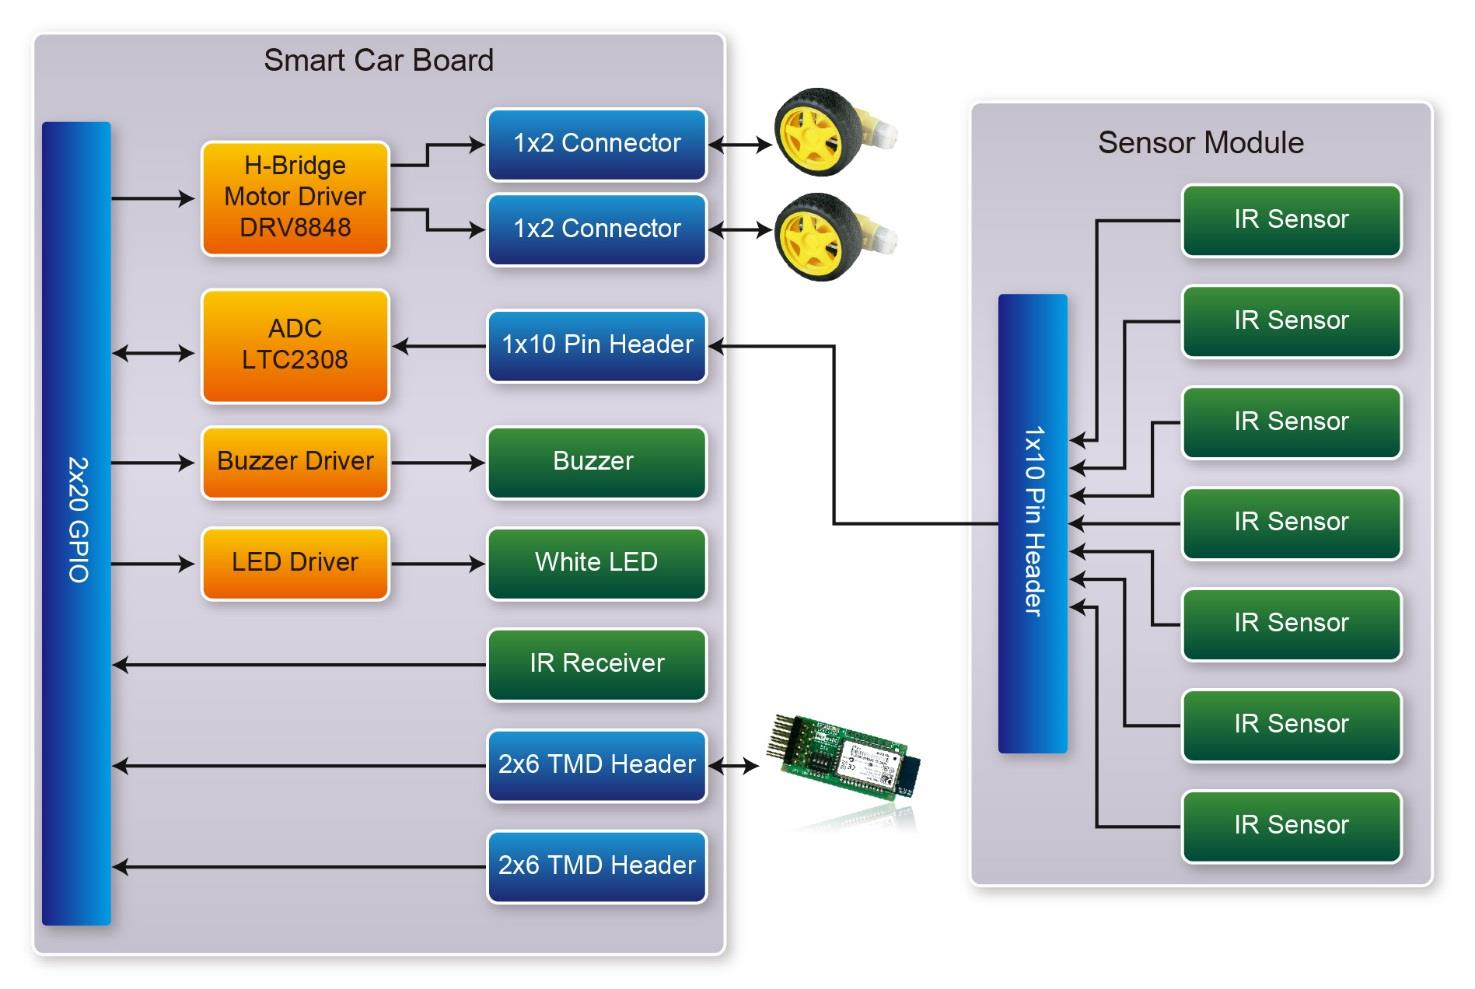 3.3 SCD(Smart Car Daughter) Card Smart Car Daughter was developed for the two wheels of the car, the infrared sensing, and motor drive control board.